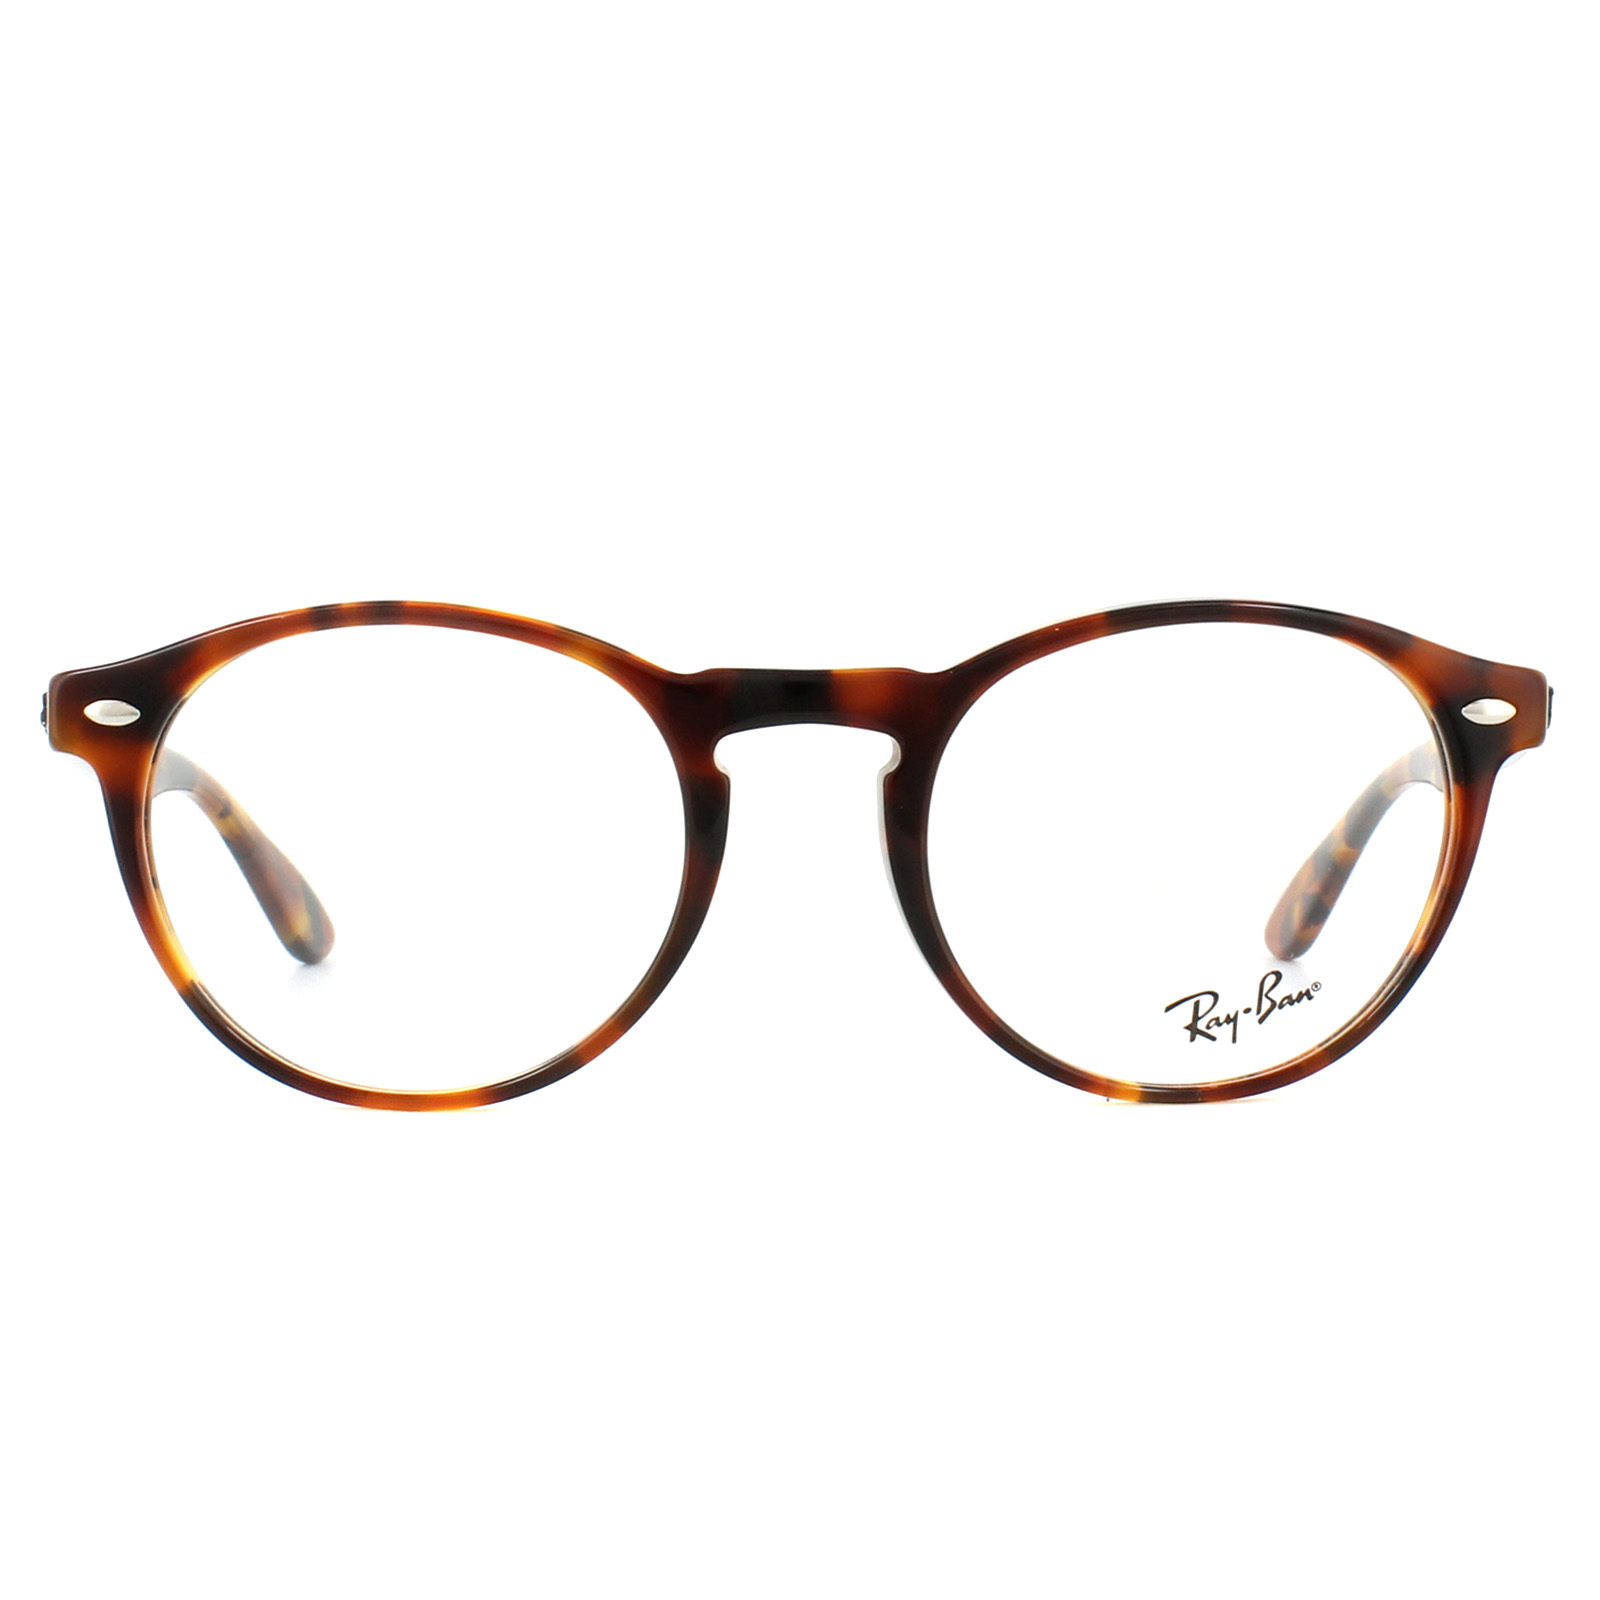 b9050bf7519 Sentinel Ray-Ban Glasses Frames 5283 5675 Top Havana Brown Yellow 51mm Mens  Womens